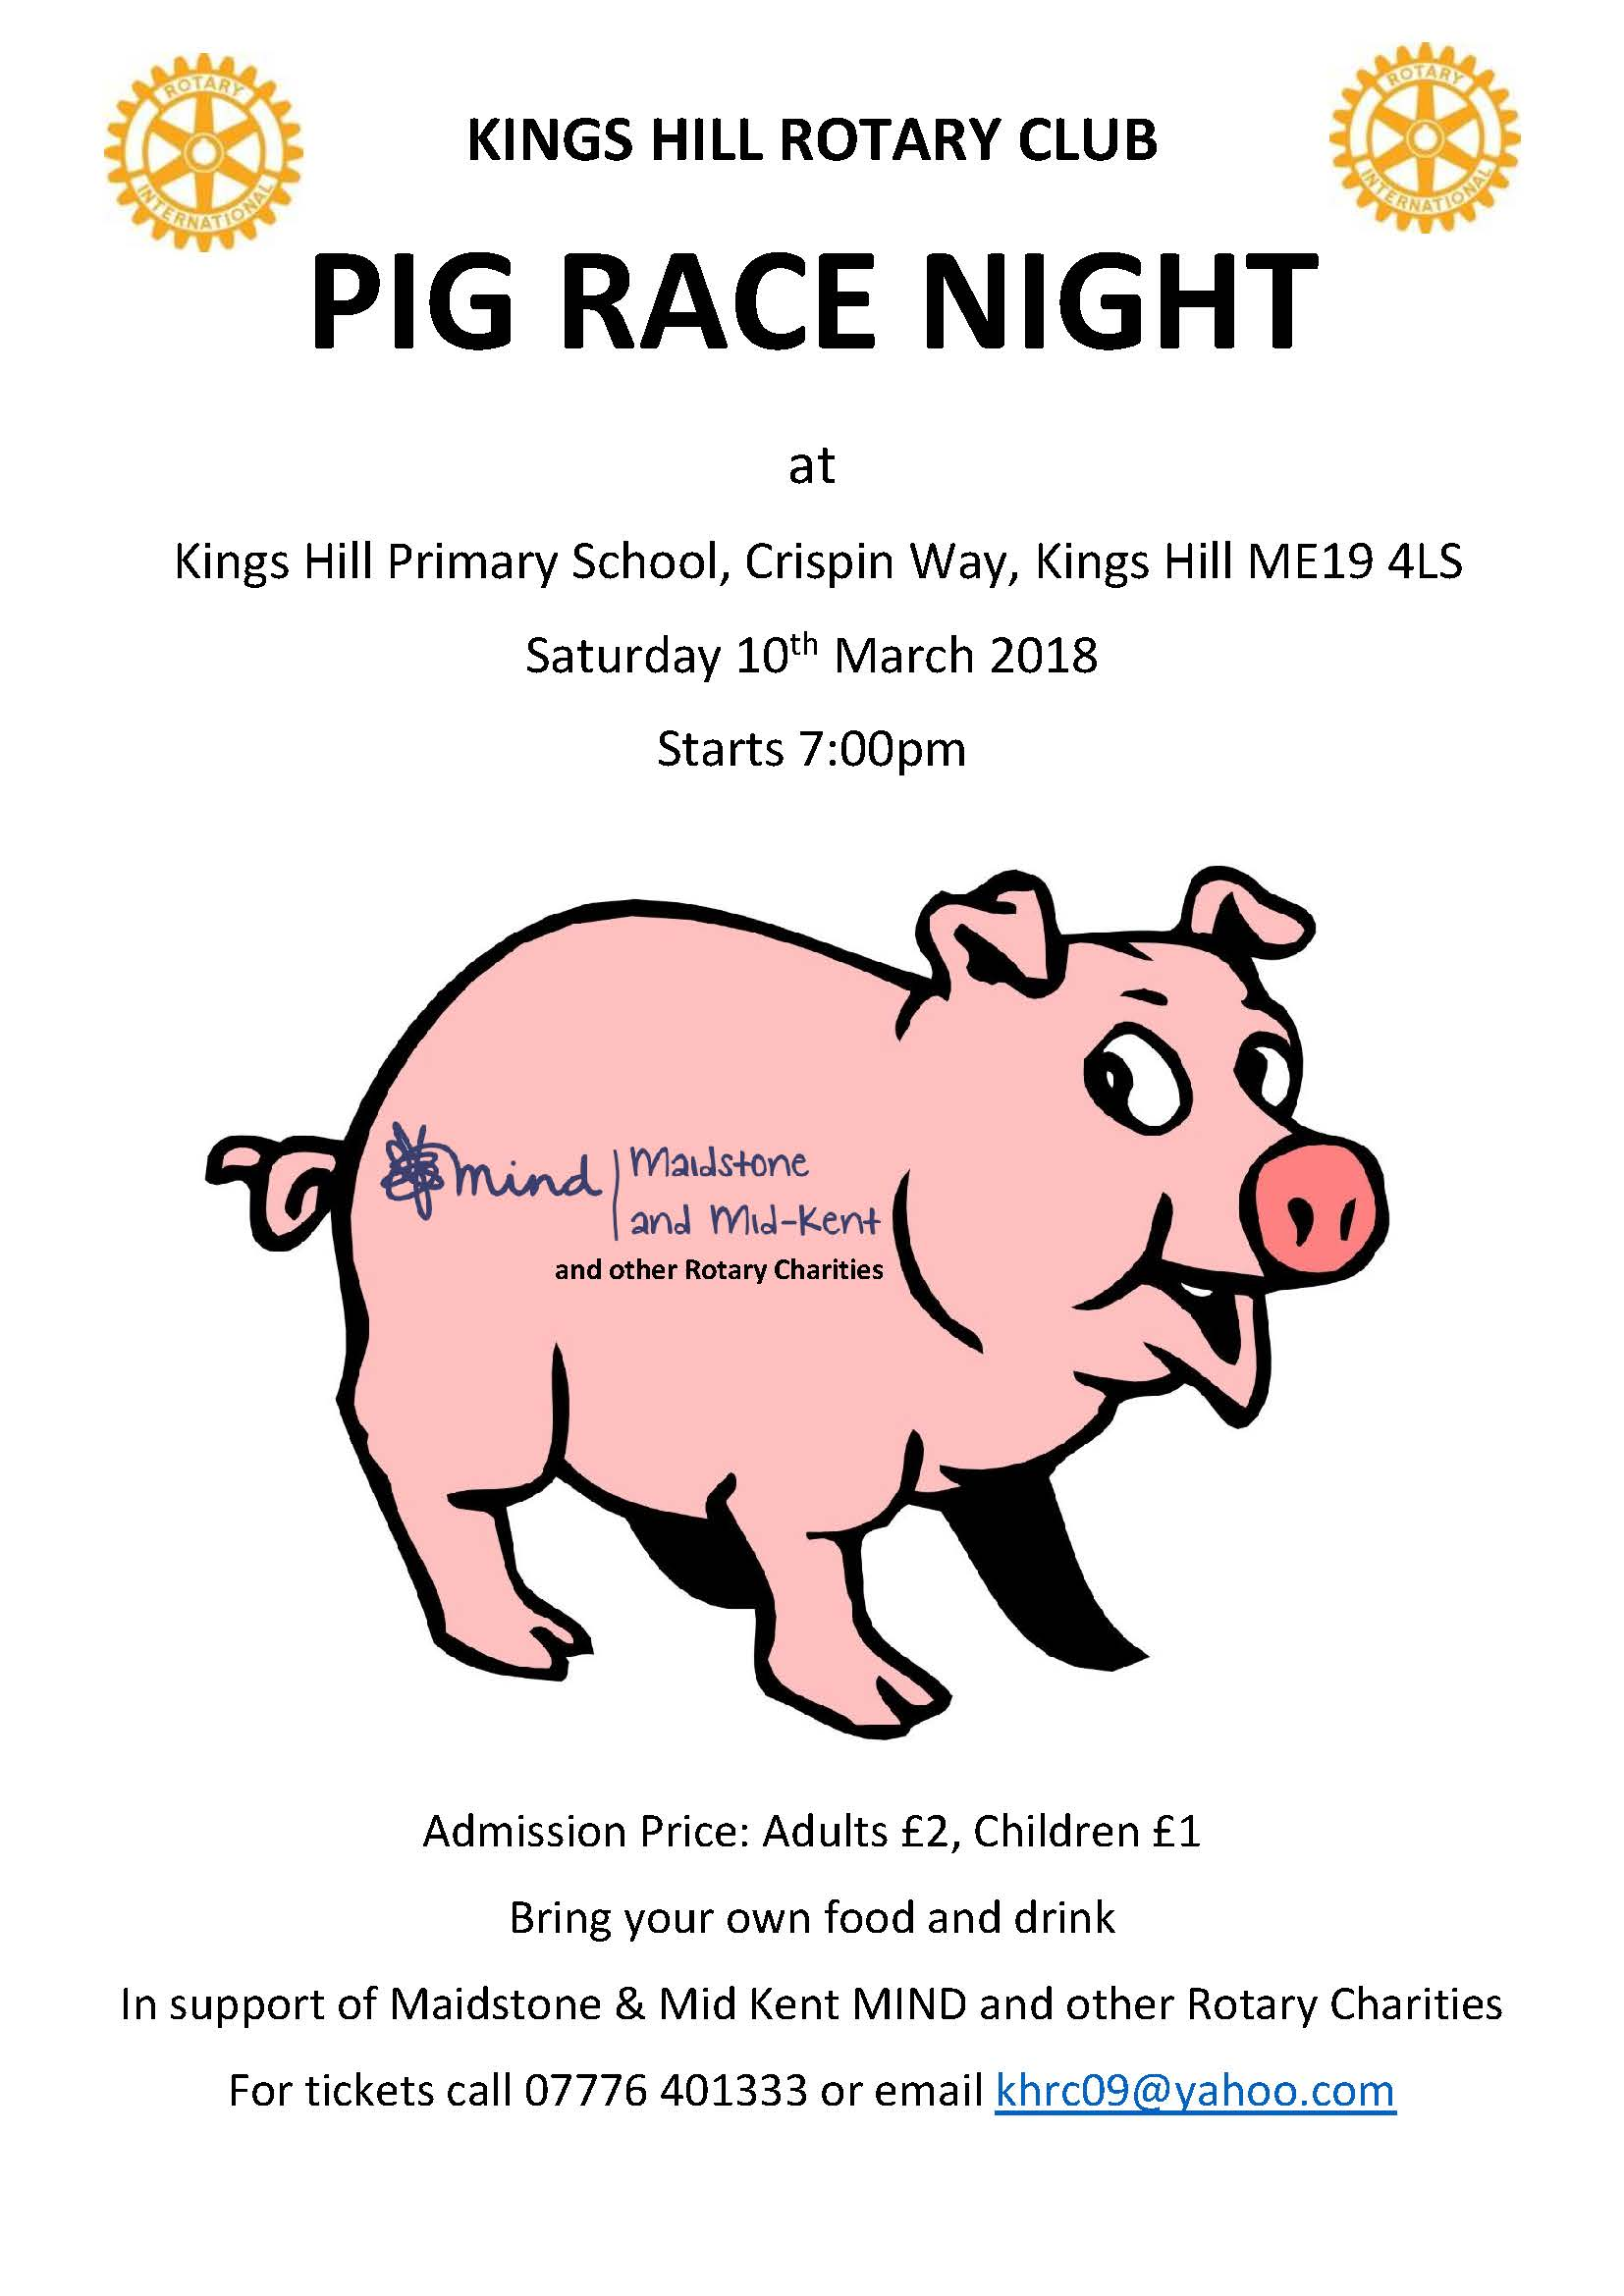 Kings Hill Rotary Club Pig Night Saturday 10th March Starts at 7pm Kings Hill Primary School - ME19 4LS £2 Admission for adults, £1 for Children Bring your own food and drinks. To book, call 07776 401333 or email khrc09@yahoo.com.